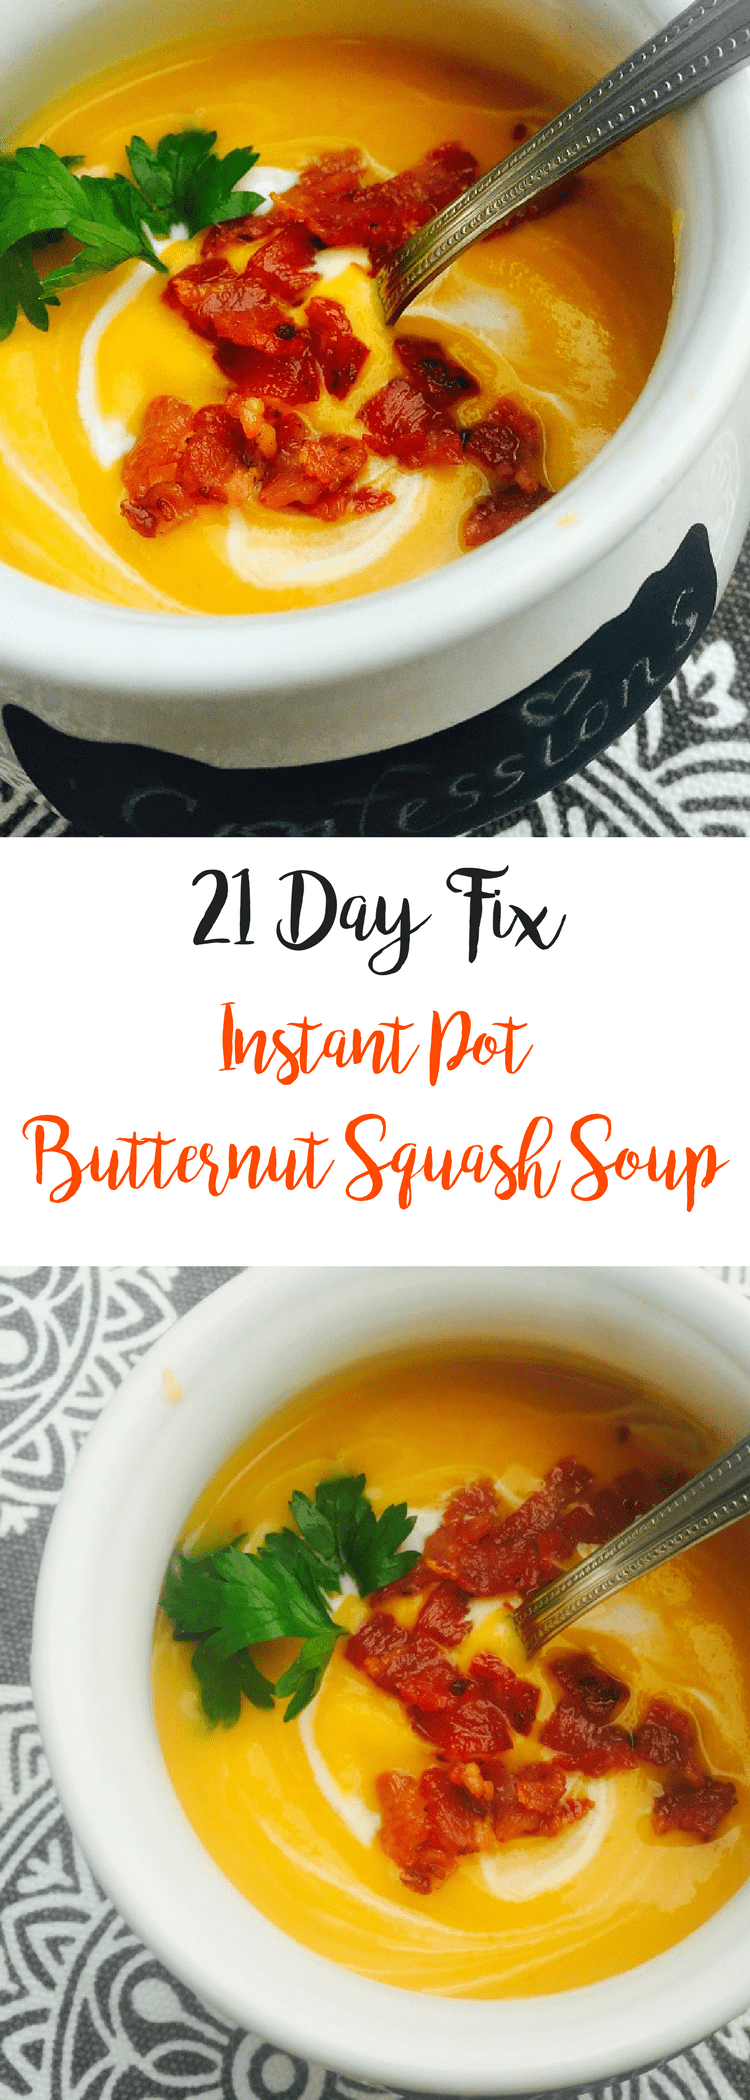 This 21 Day Fix Butternut Squash Soup Is Dairy Free Gluten Free But Oh So Comforting And